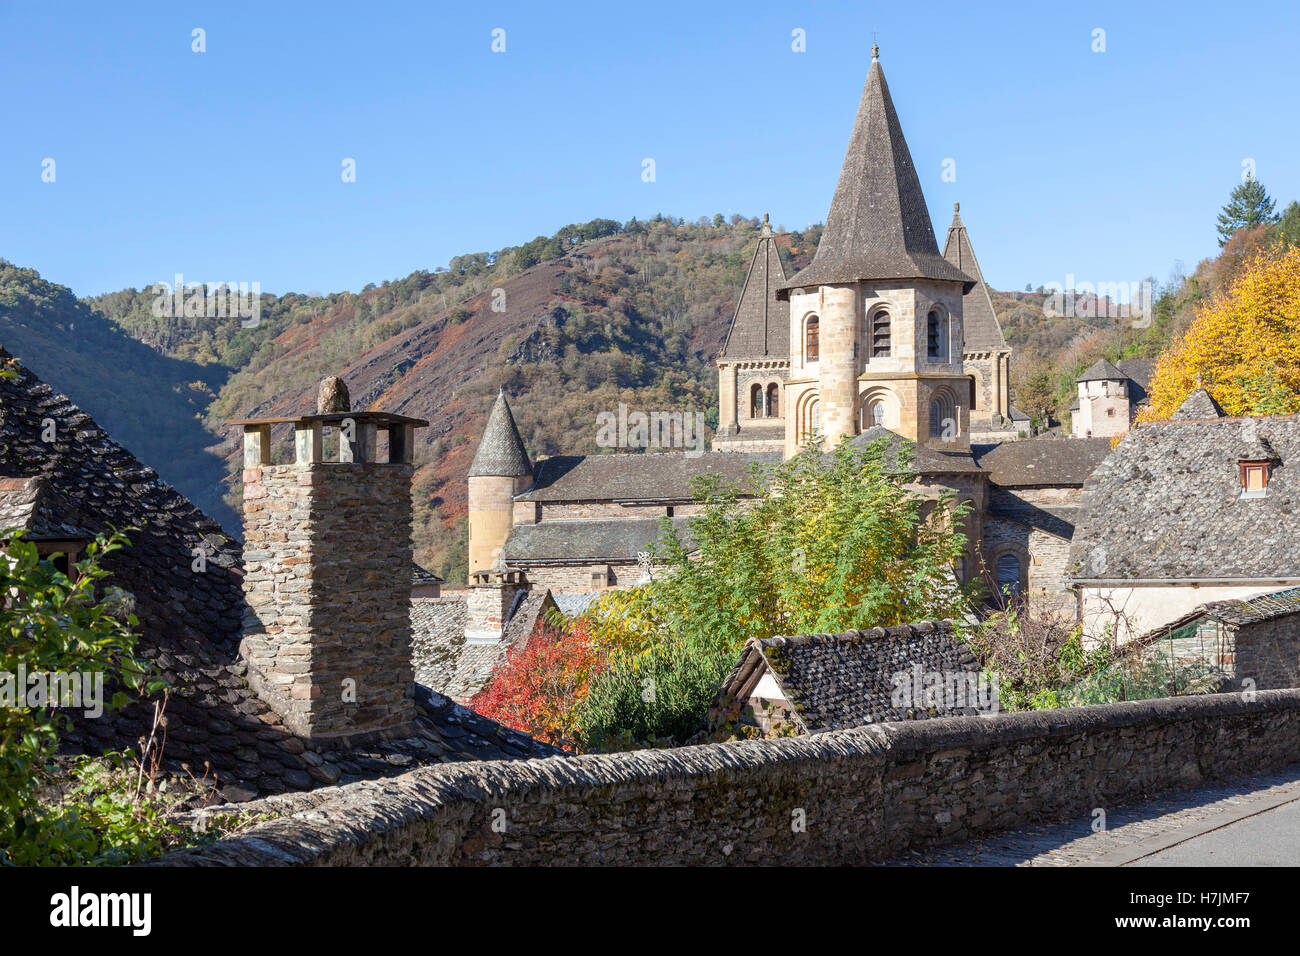 Le petit village médiéval de Conques (France). Il montre aux visiteurs son église abbatiale et regroupés Photo Stock